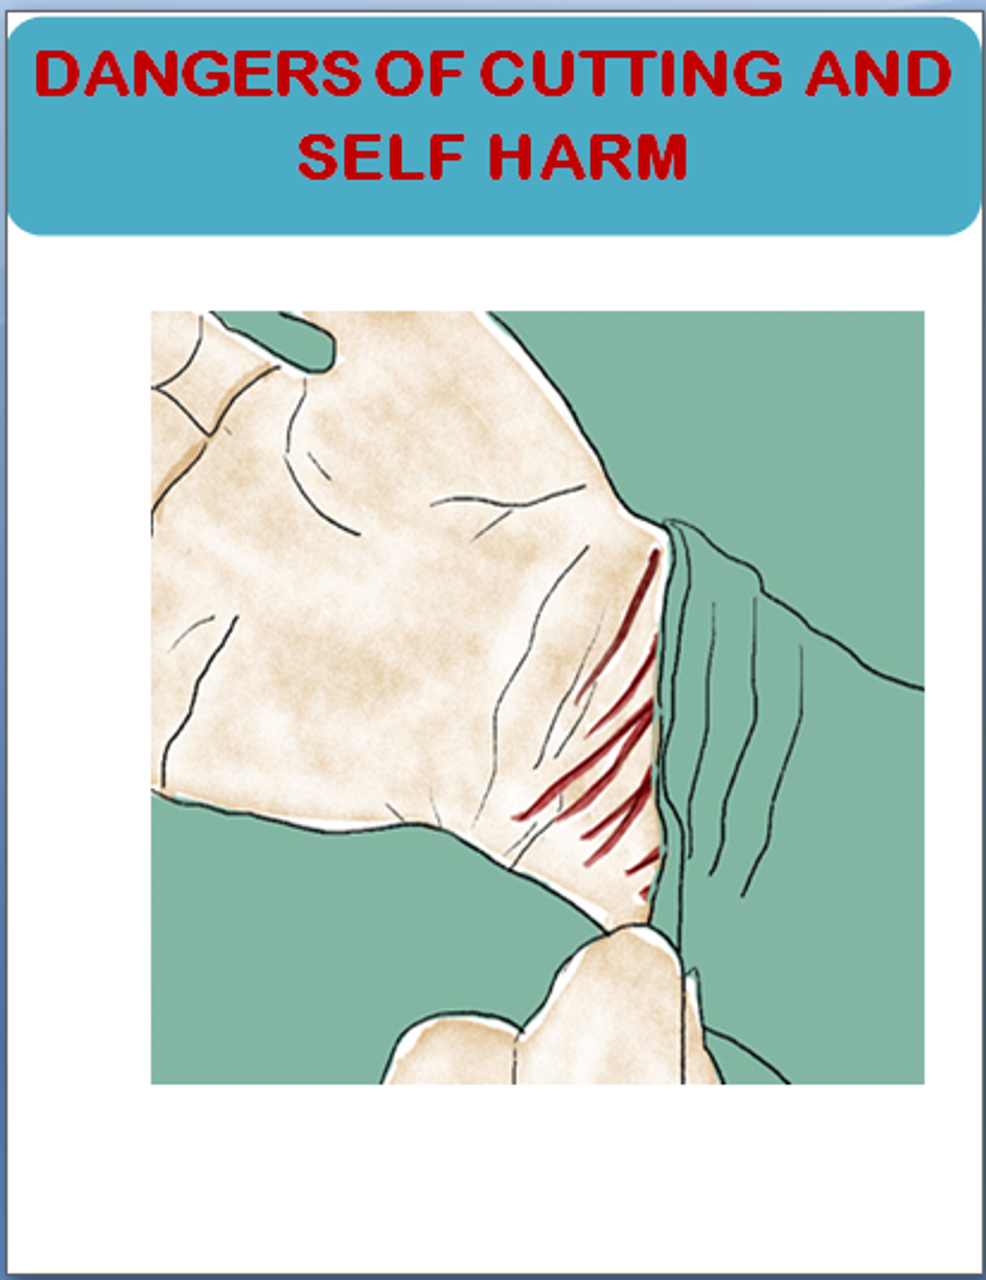 The Dangers of Cutting and Self-Harm